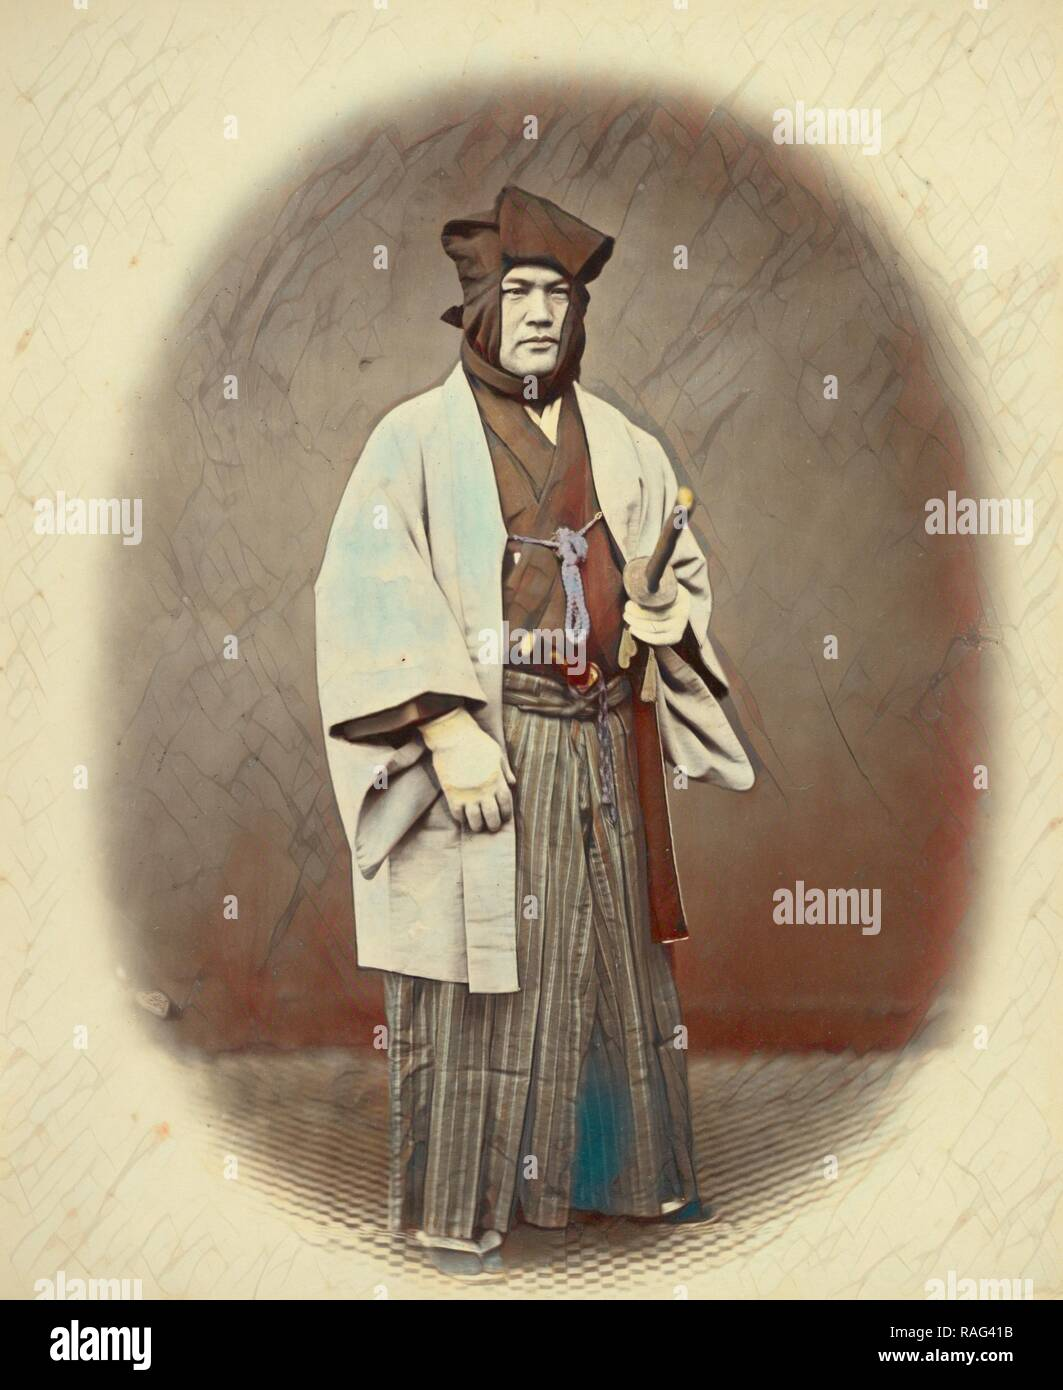 Officer in Winter Dress, Felice Beato (English, born Italy, 1832 - 1909), Japan, 1866 - 1867, Hand-colored Albumen reimagined - Stock Image